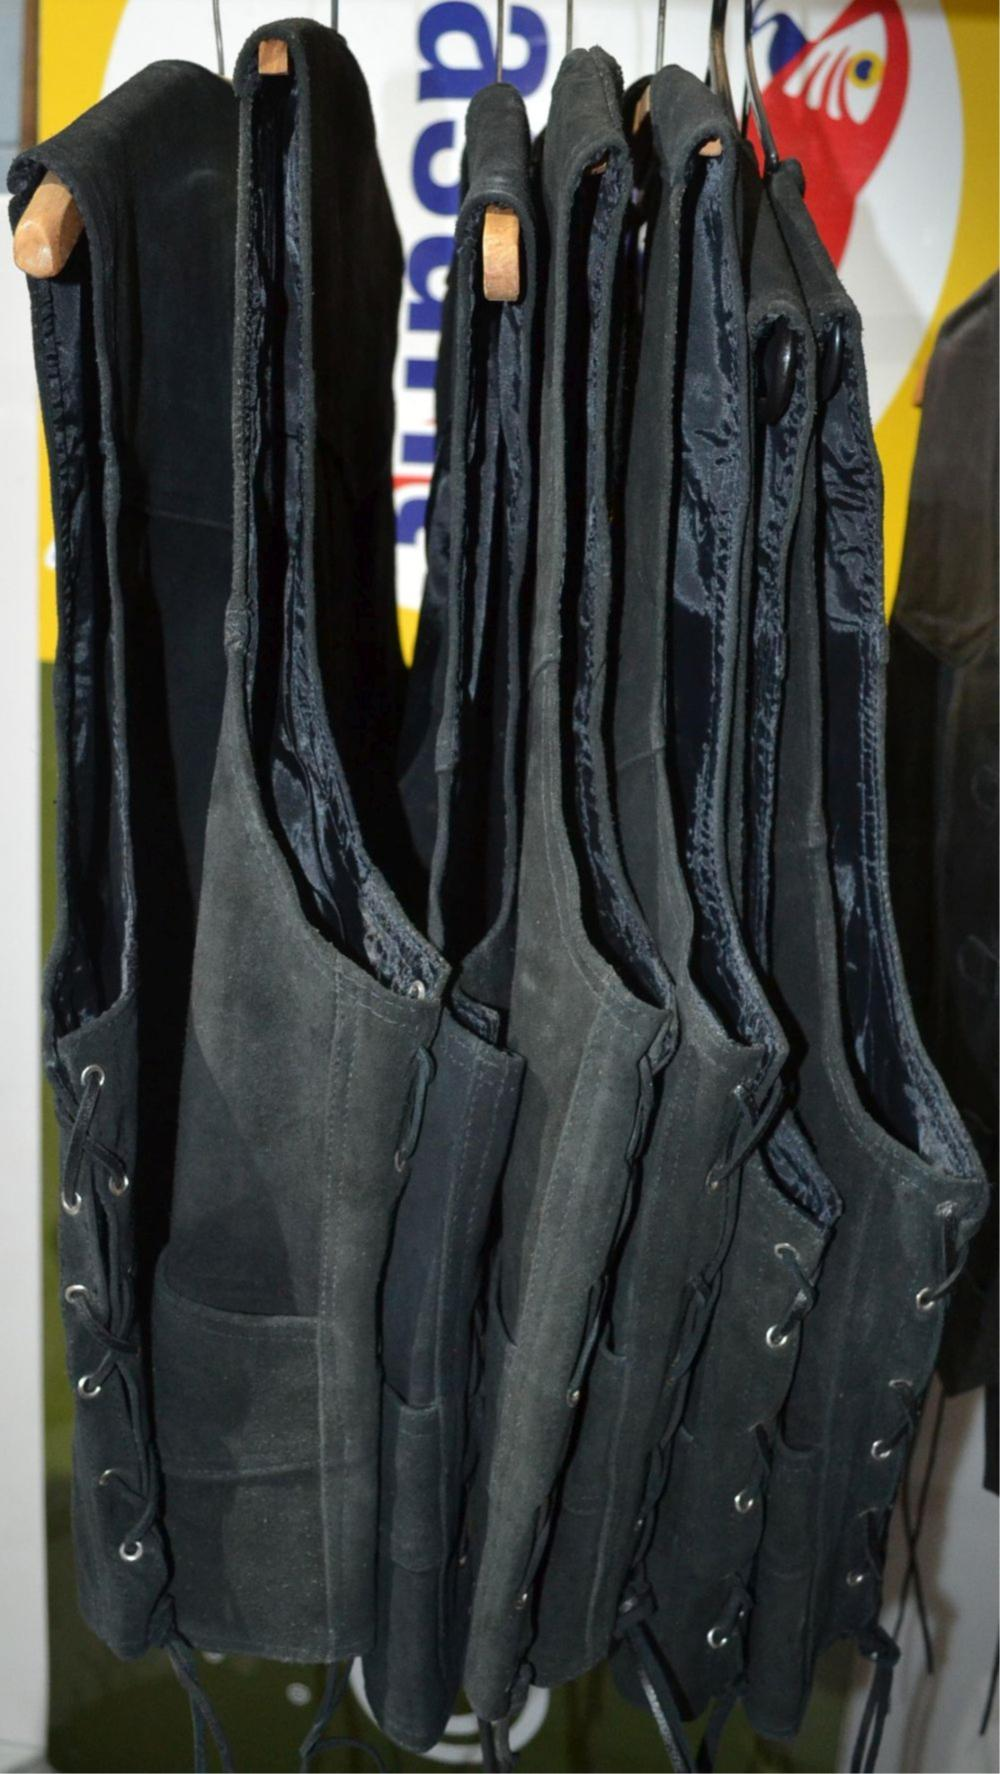 7 seude vests by Southern Cross in black